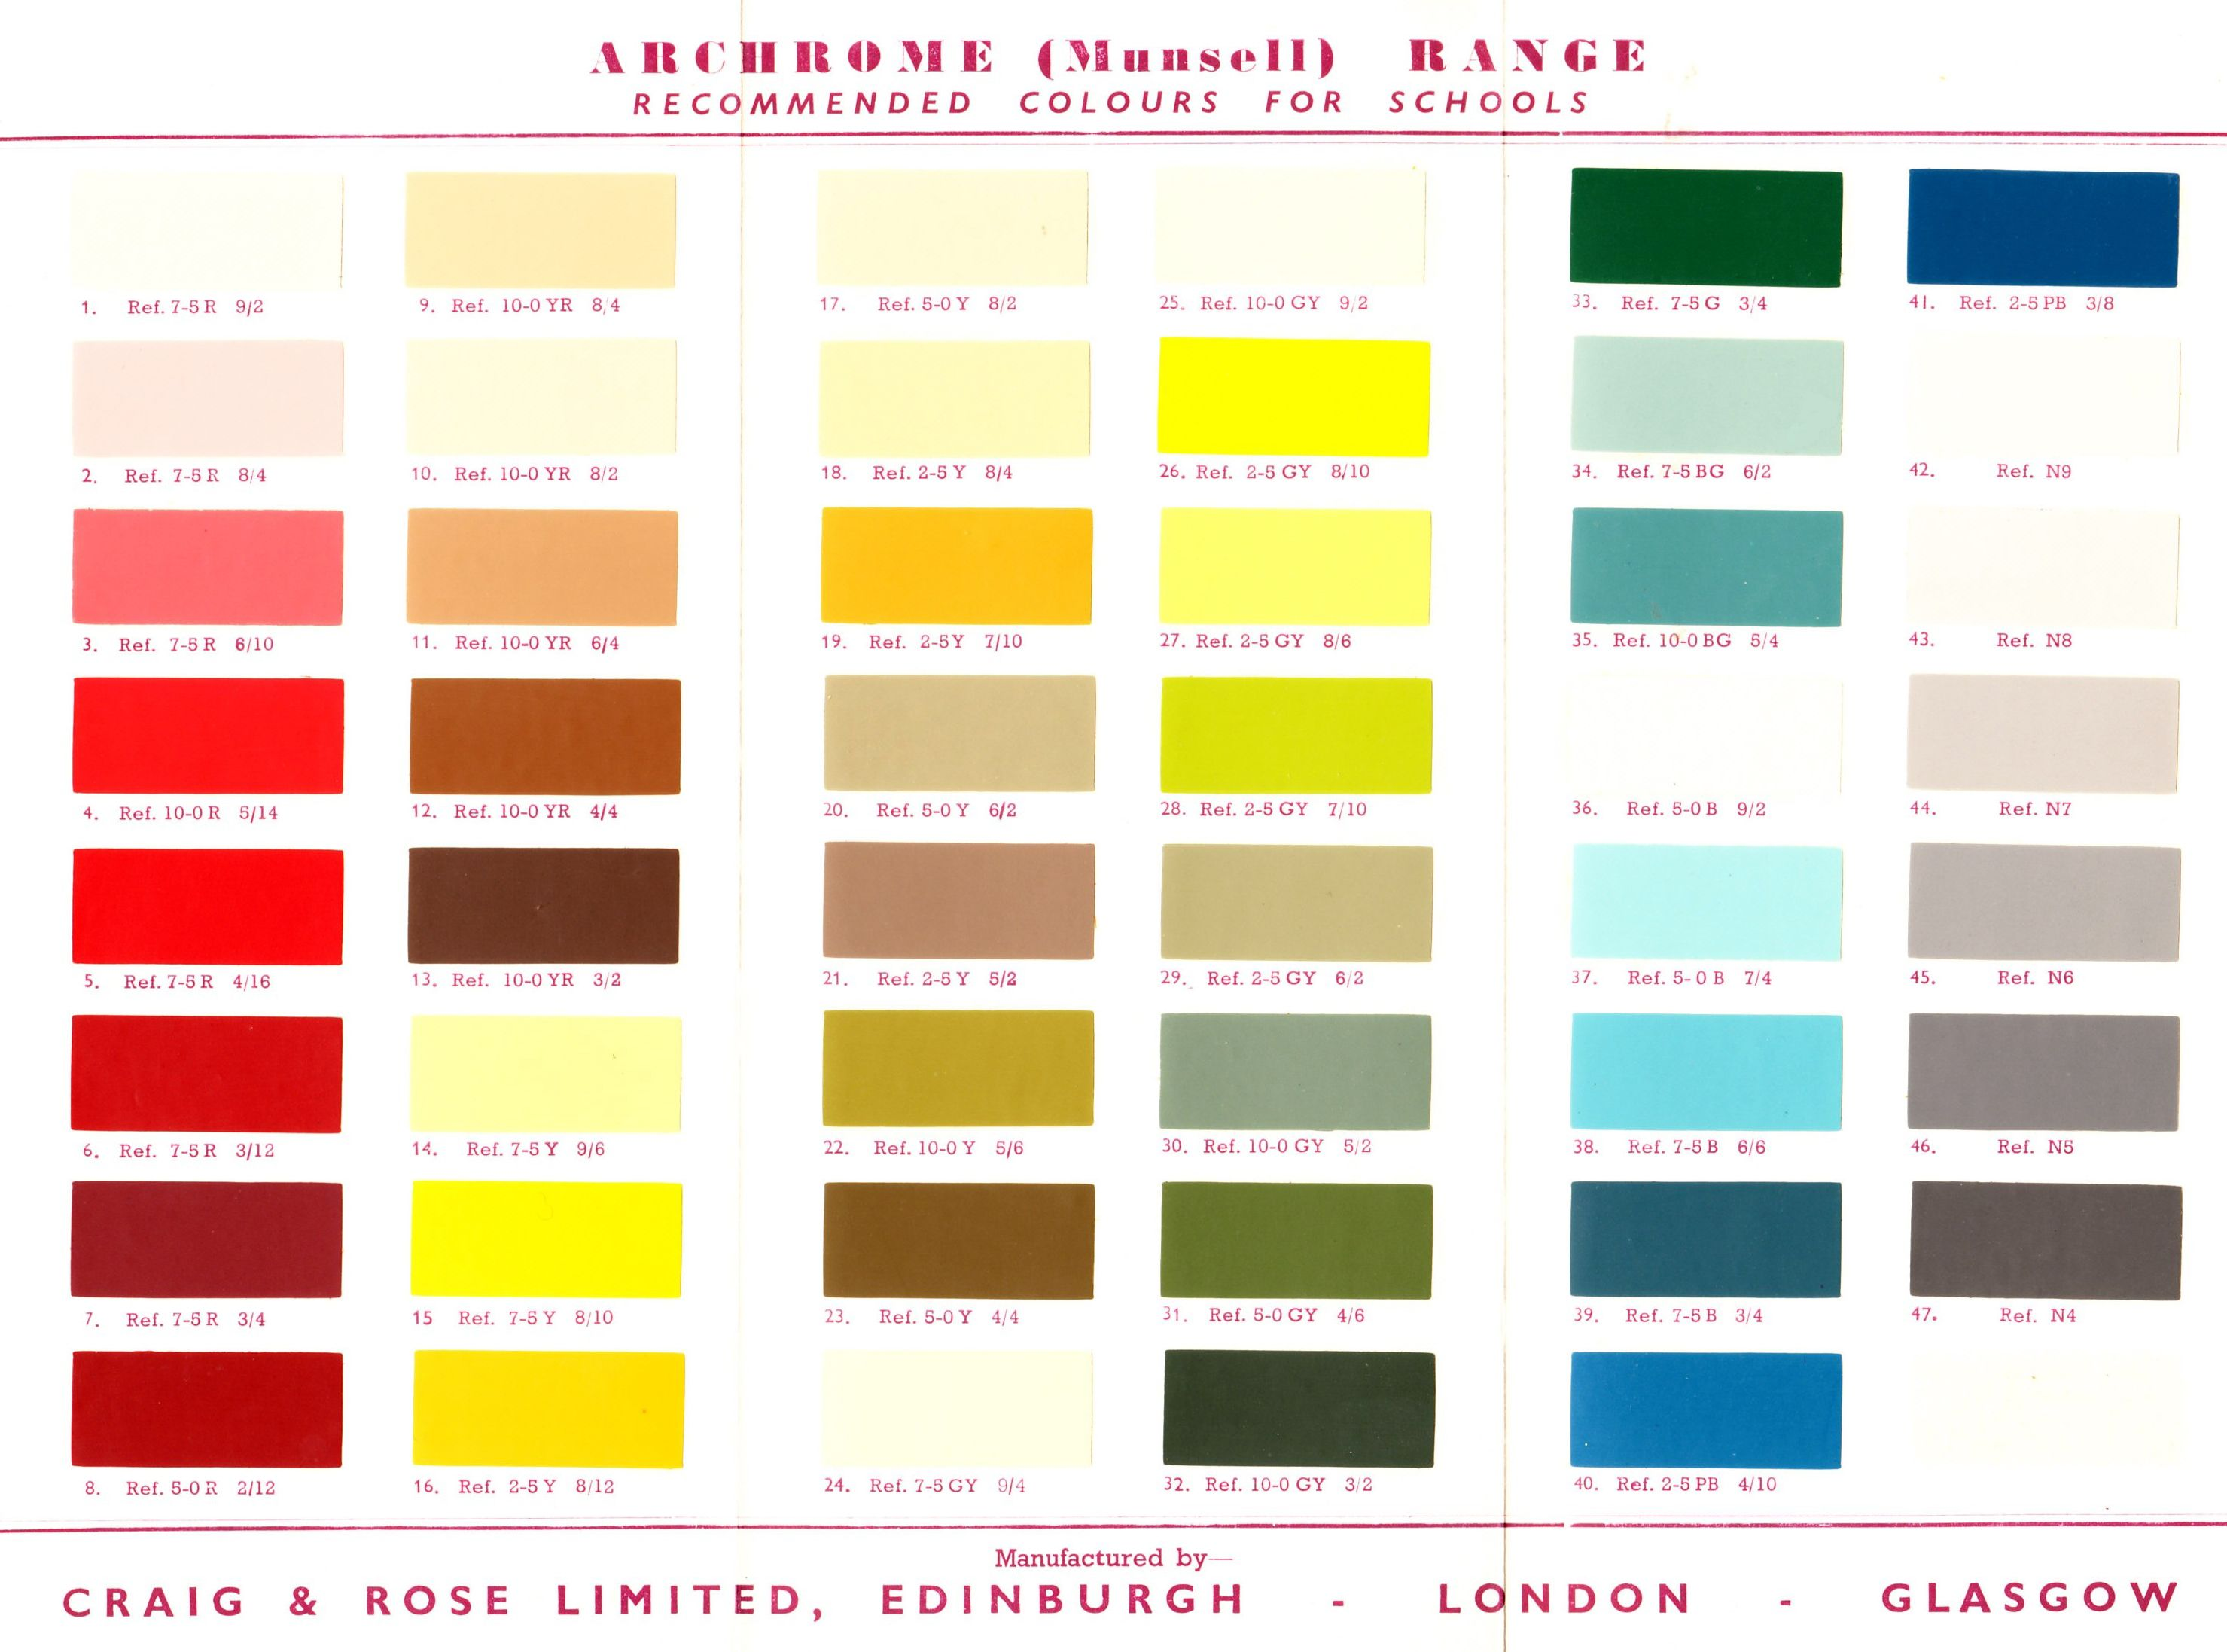 Co color painting games - Archrome Munsell Colour Range An Account Of This Very Influential Collection Of Paint